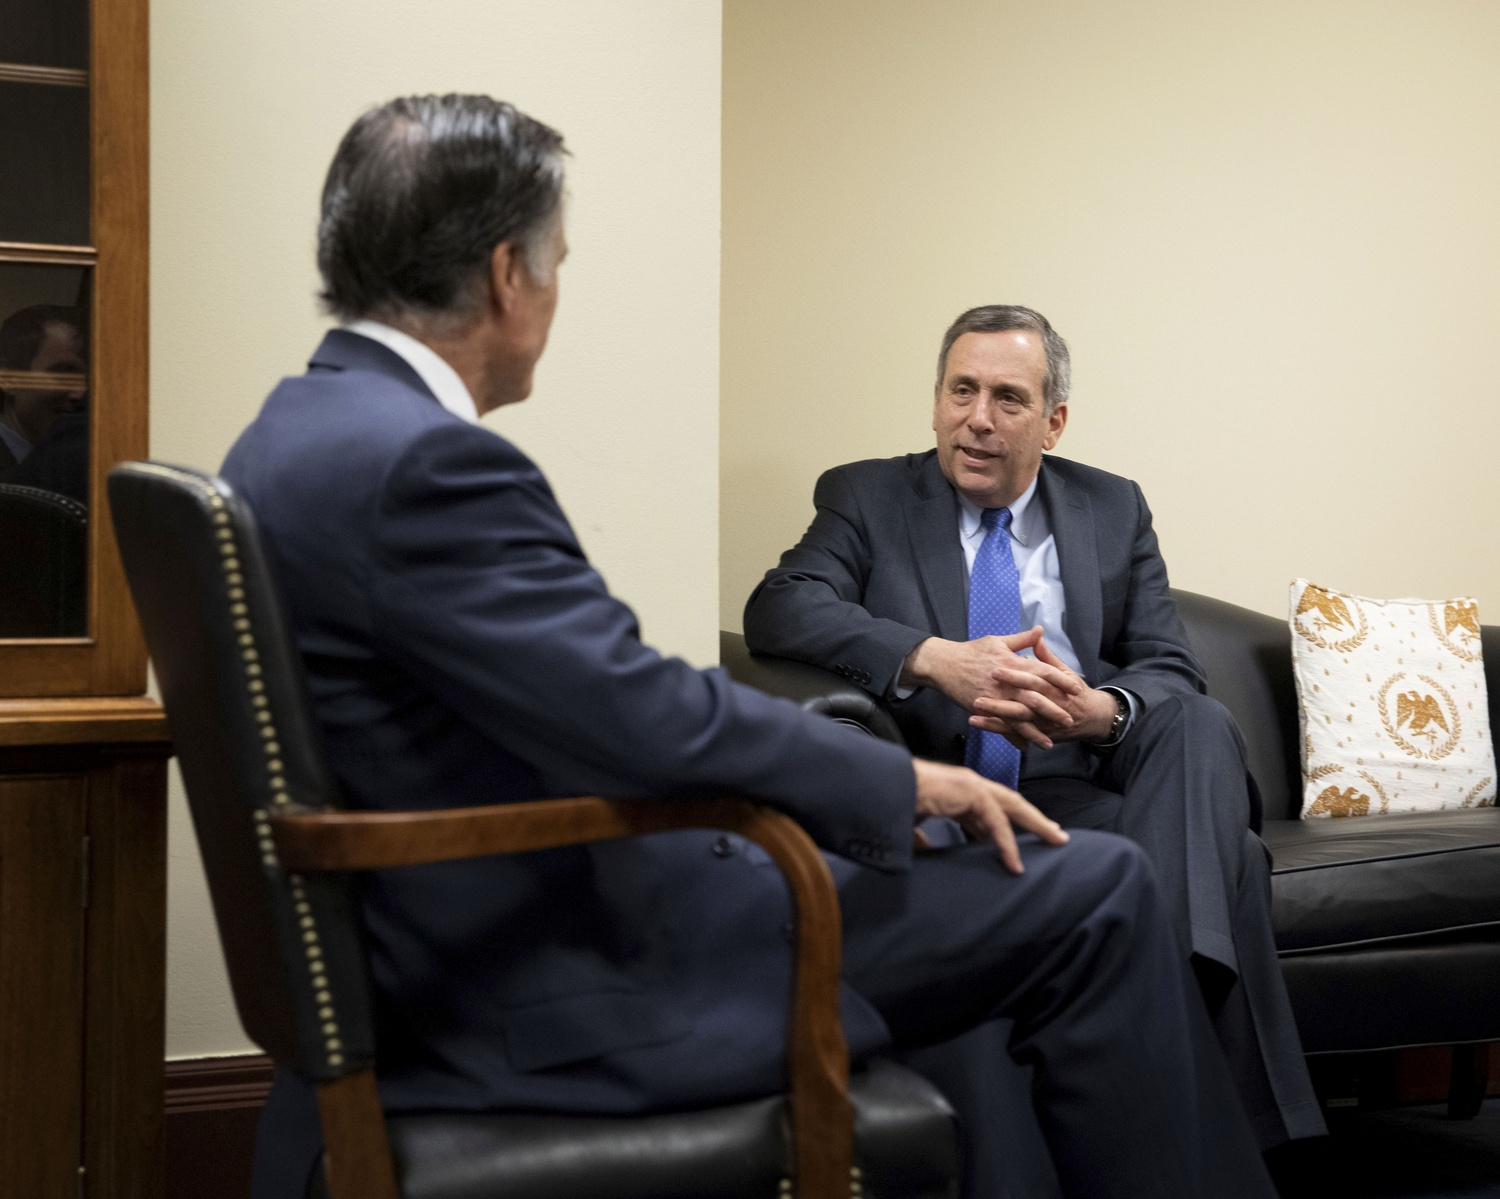 Bacow and Romney